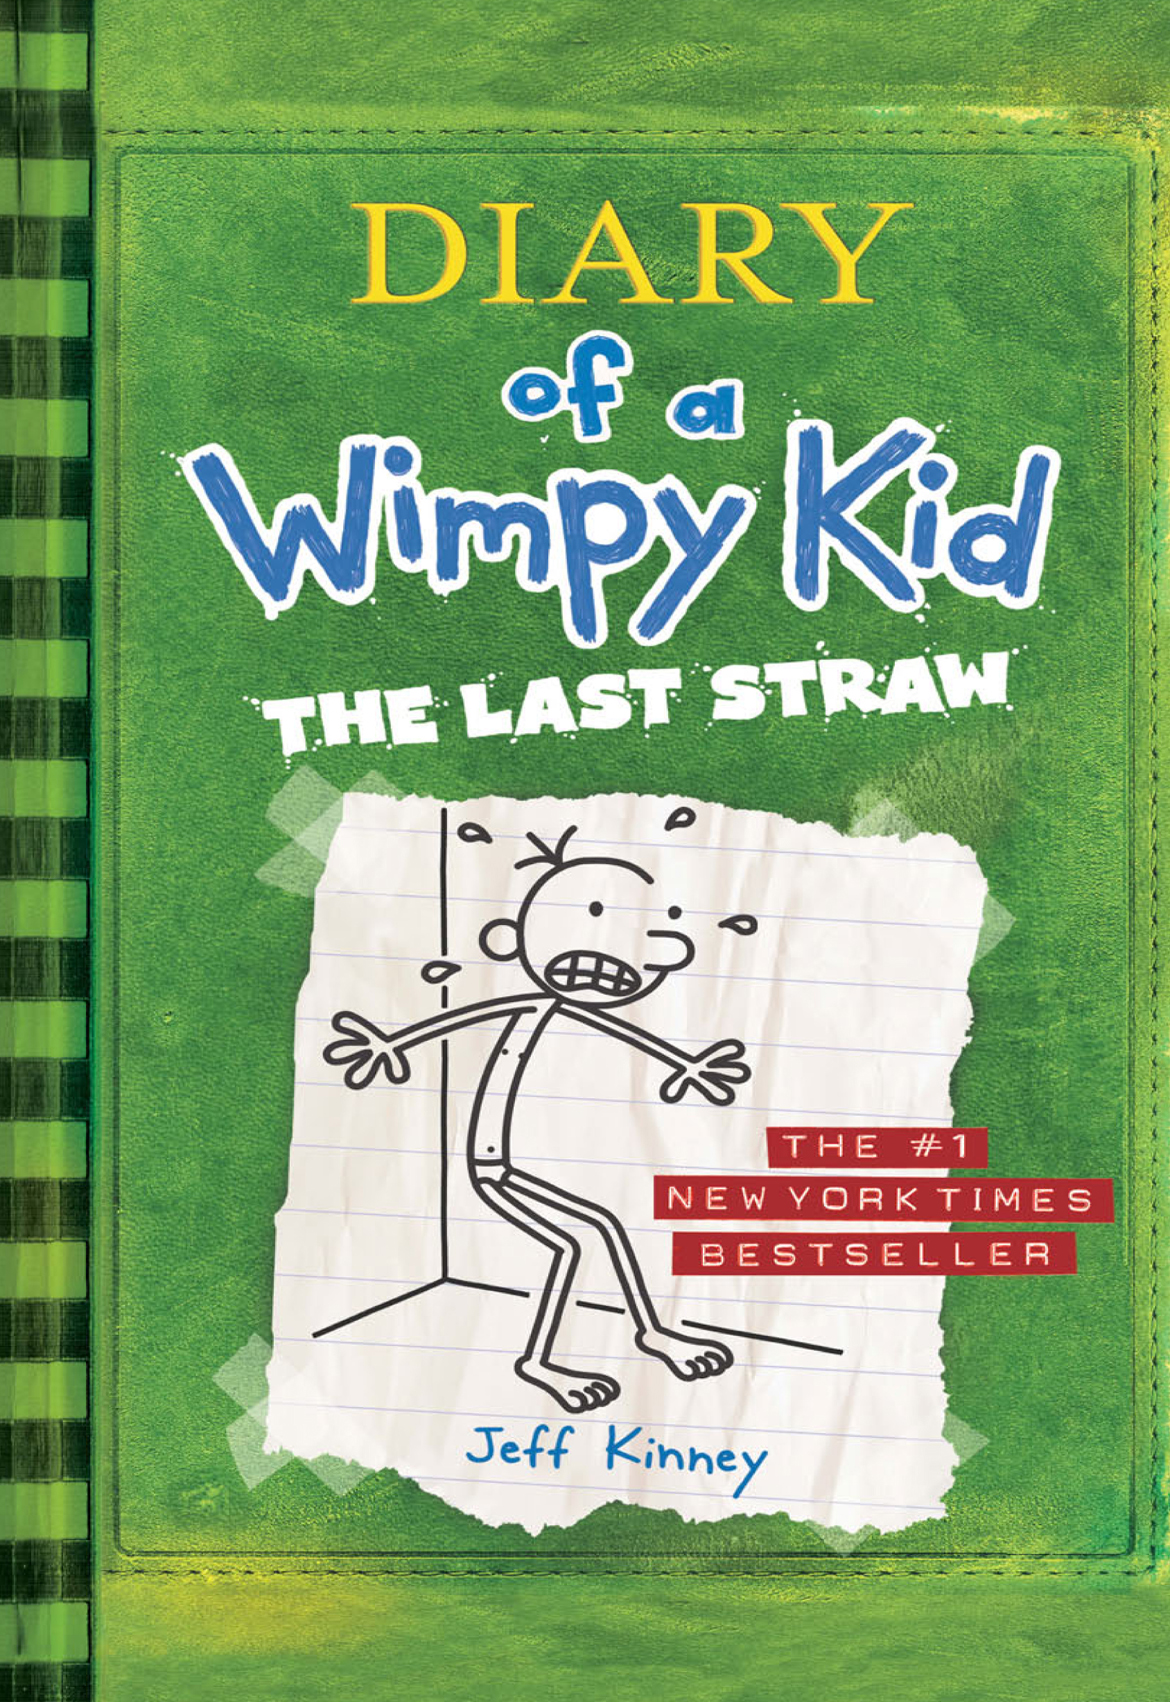 Cover Image of The Last Straw (Diary of a Wimpy Kid #3)